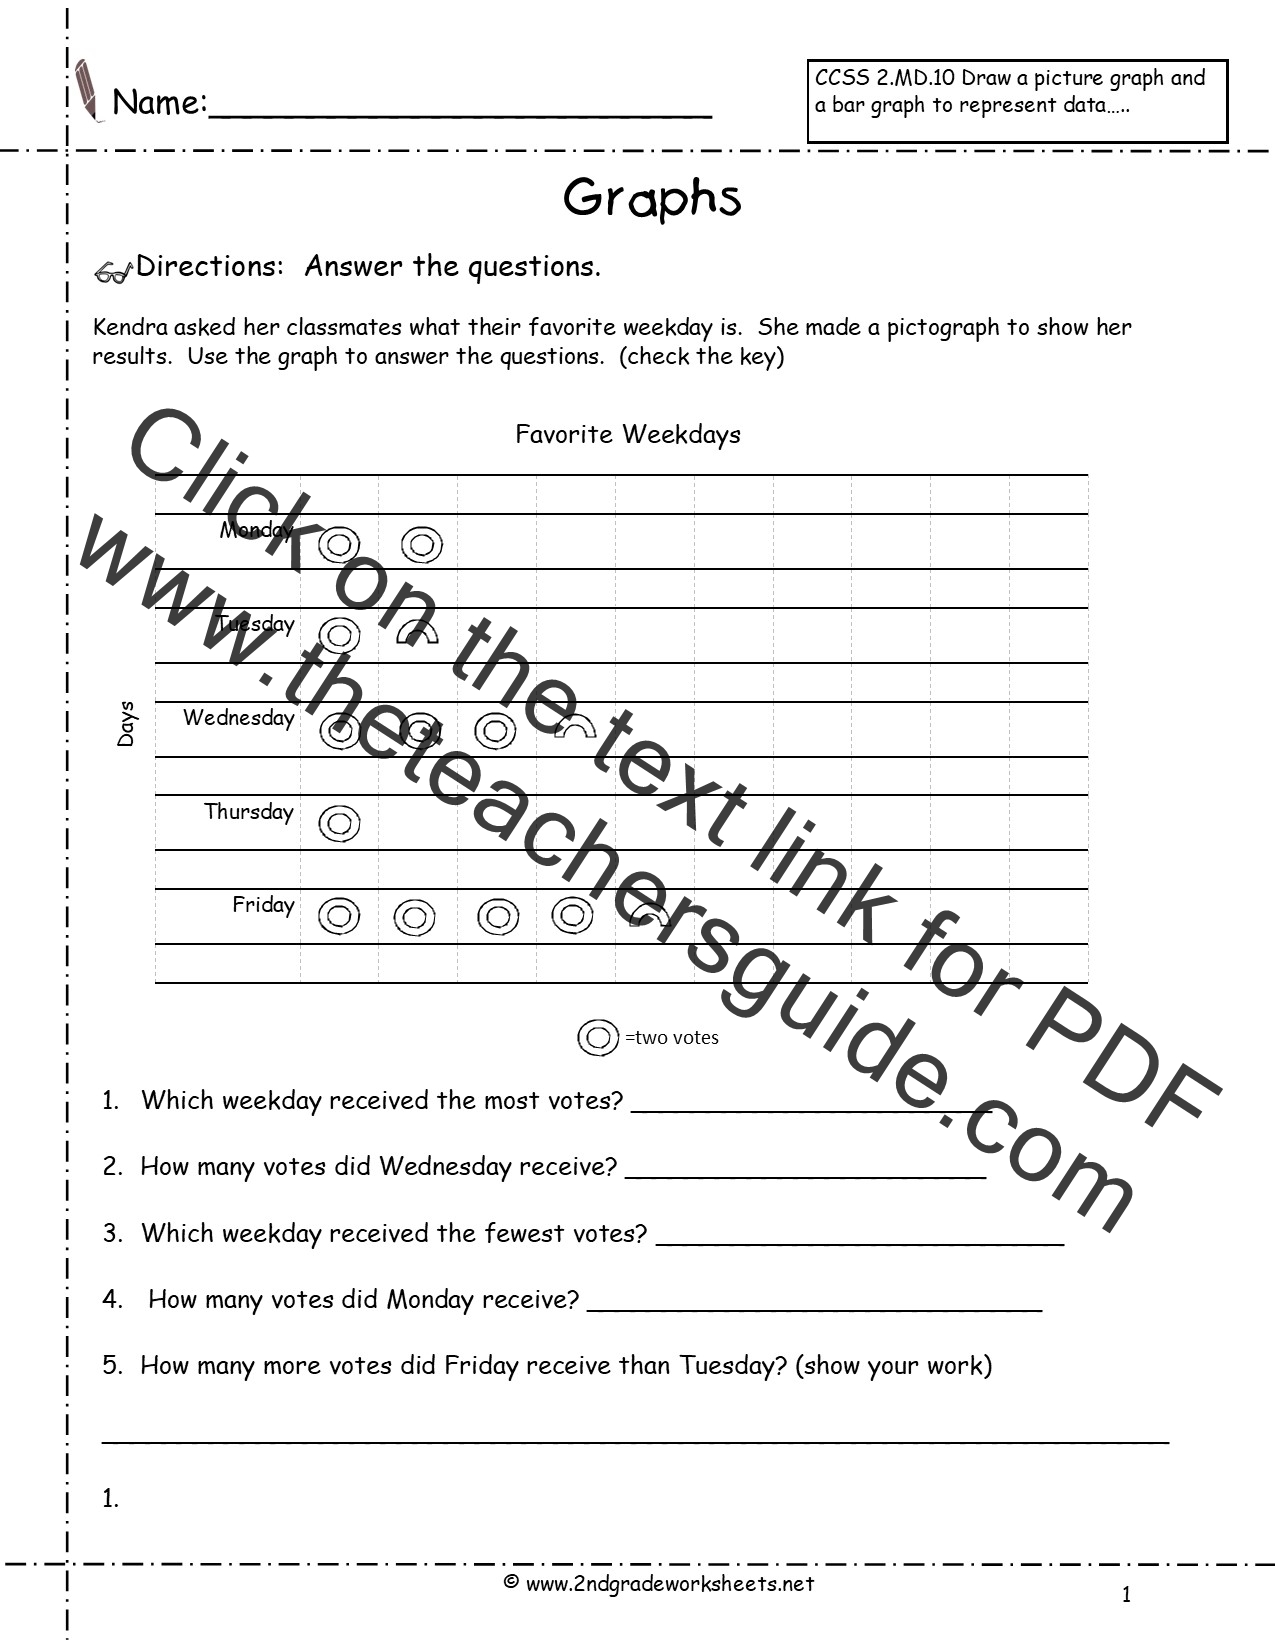 Worksheets Pictograph Worksheets Cheatslist Free